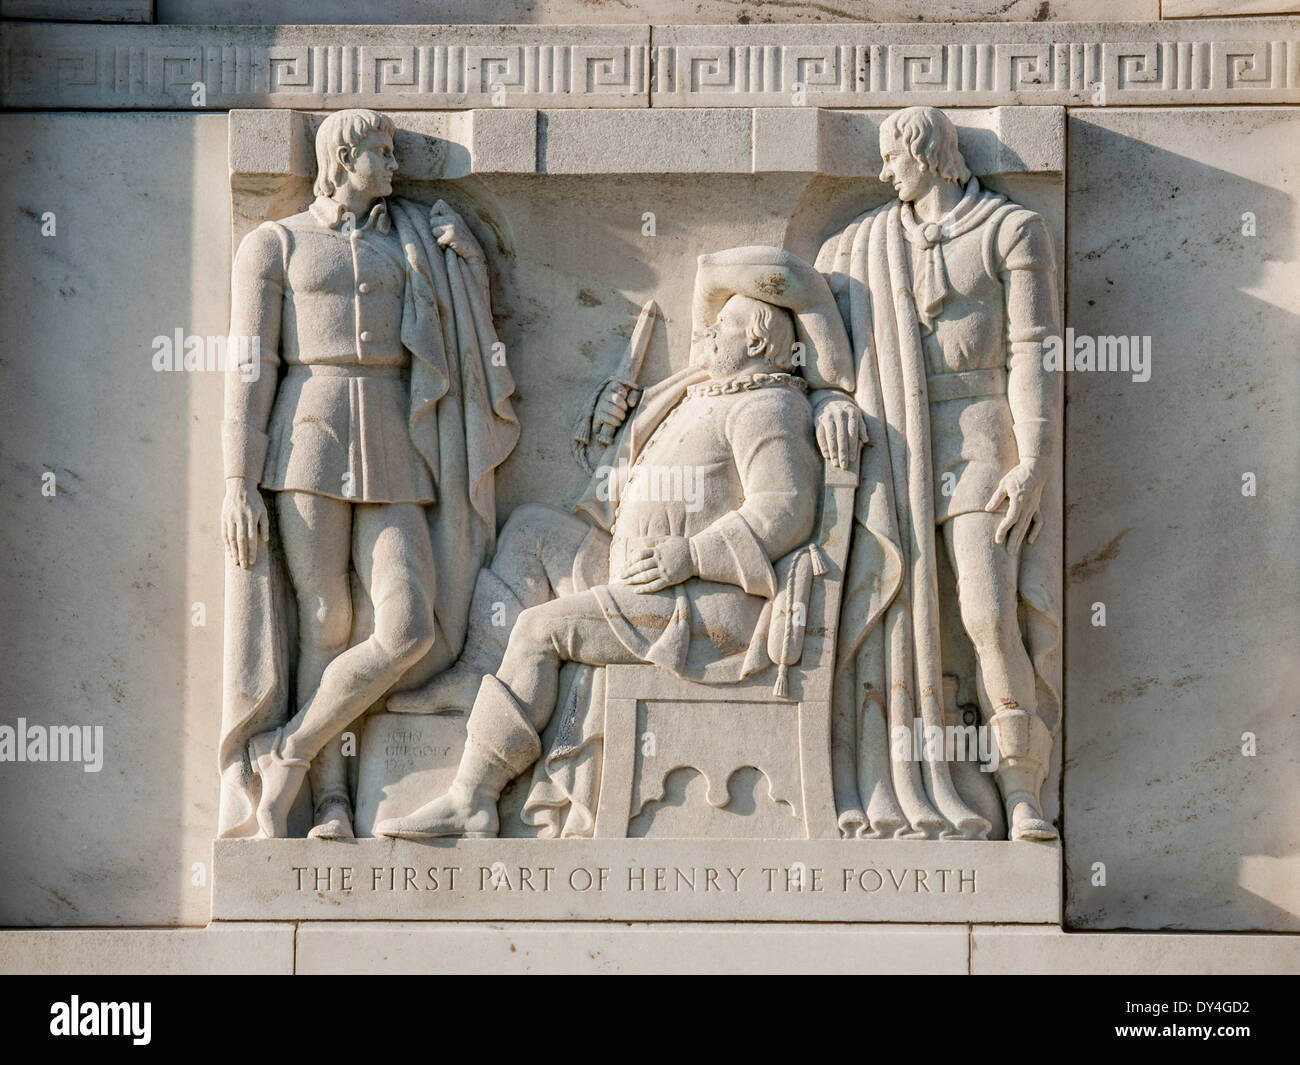 Street-level bas-reliefs of scenes from Shakespeare's plays by the sculptor John Gregory - 'The First Part of Henry the Fourth' - Stock Image